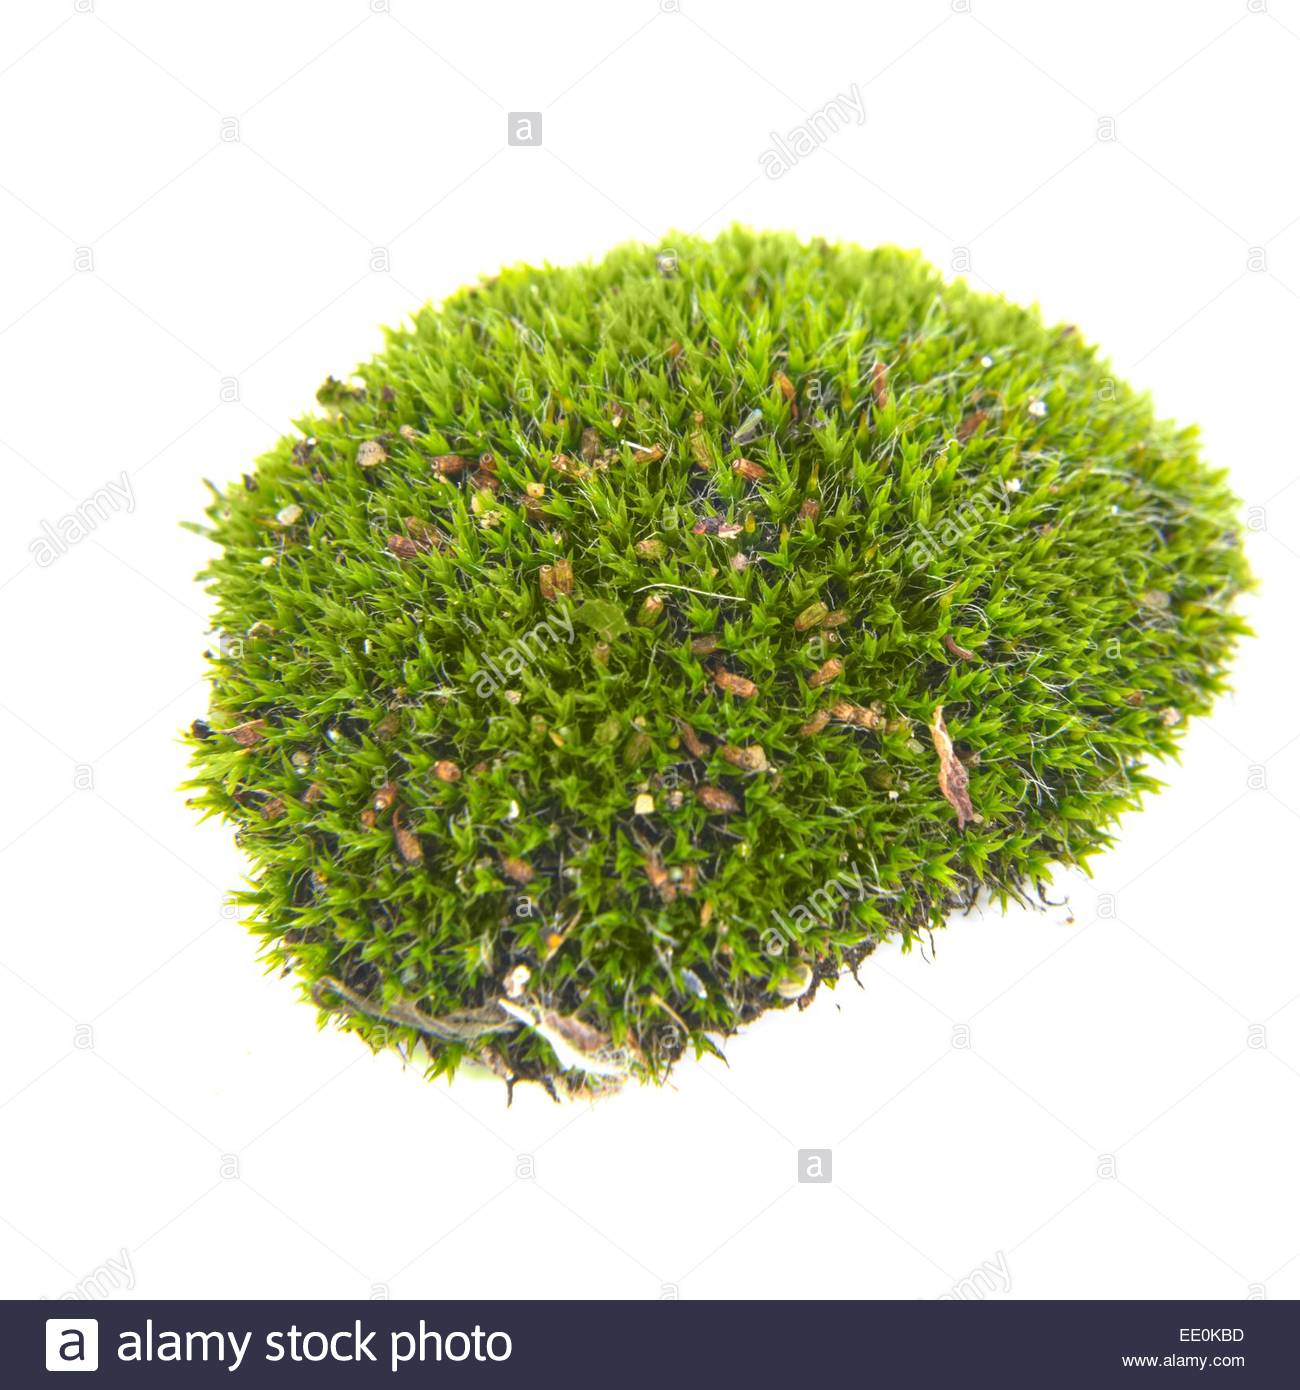 Green moss isolated - Stock Image